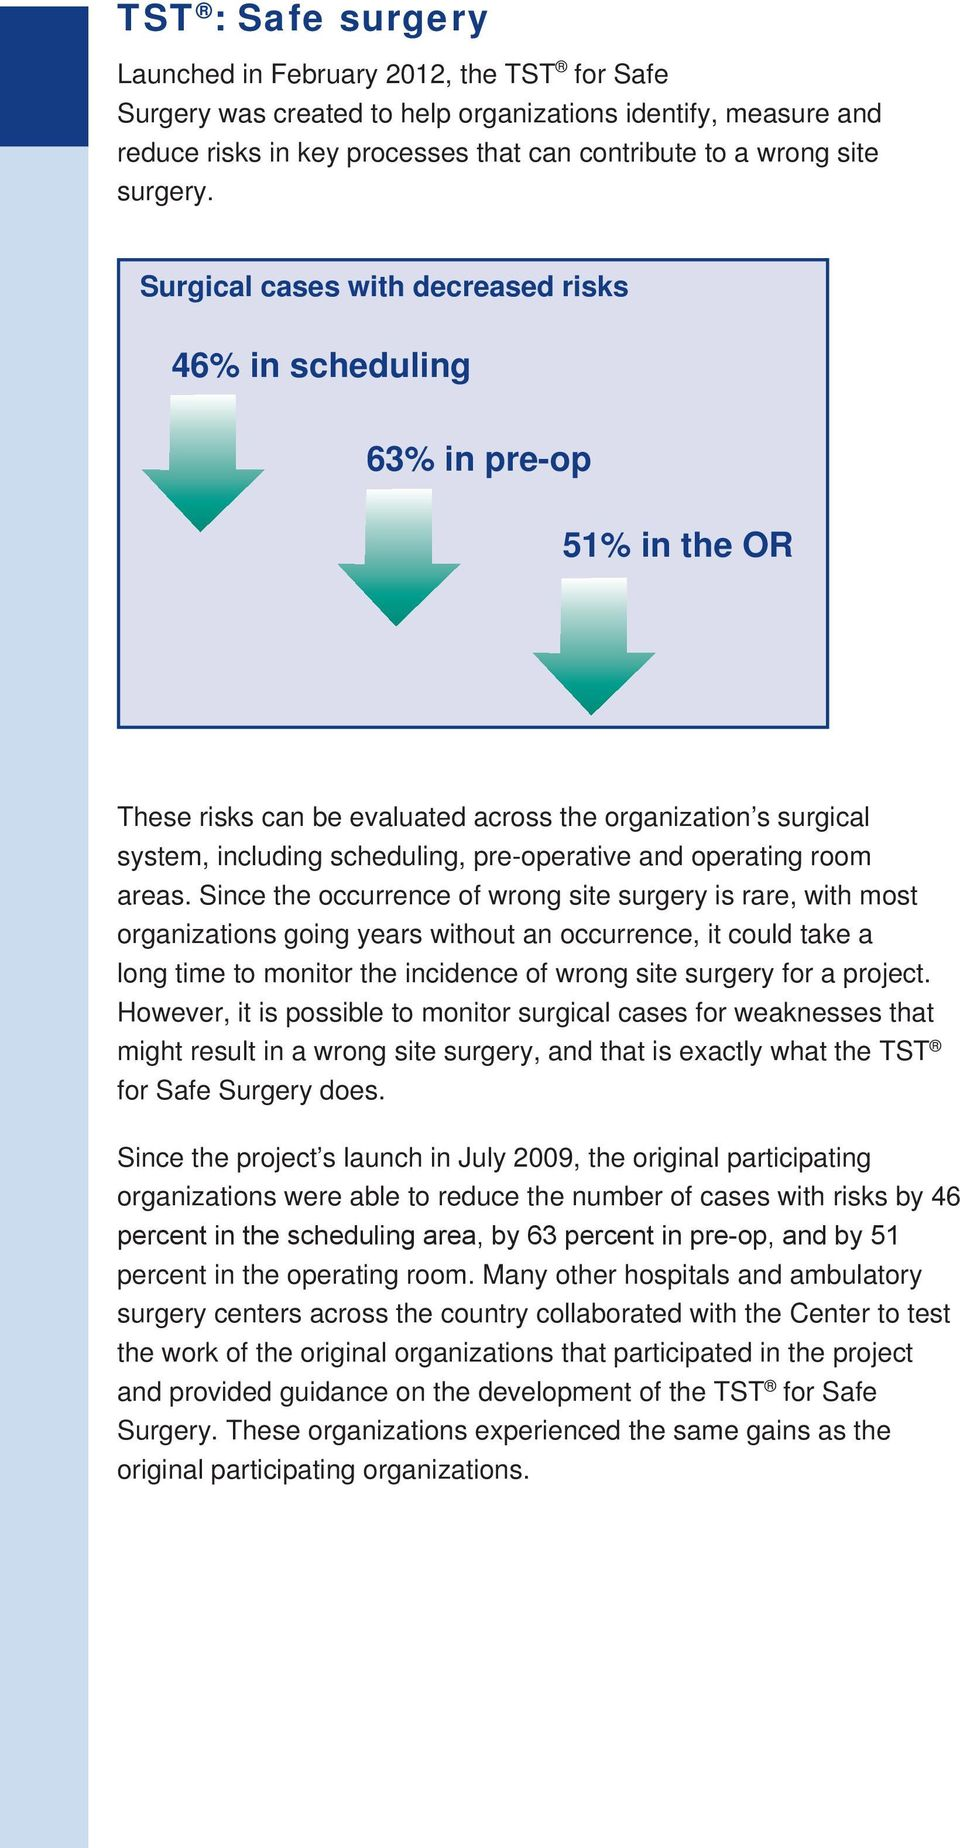 Surgical cases with decreased risks 46% in scheduling 63% in pre-op 51% in the OR These risks can be evaluated across the organization s surgical system, including scheduling, pre-operative and